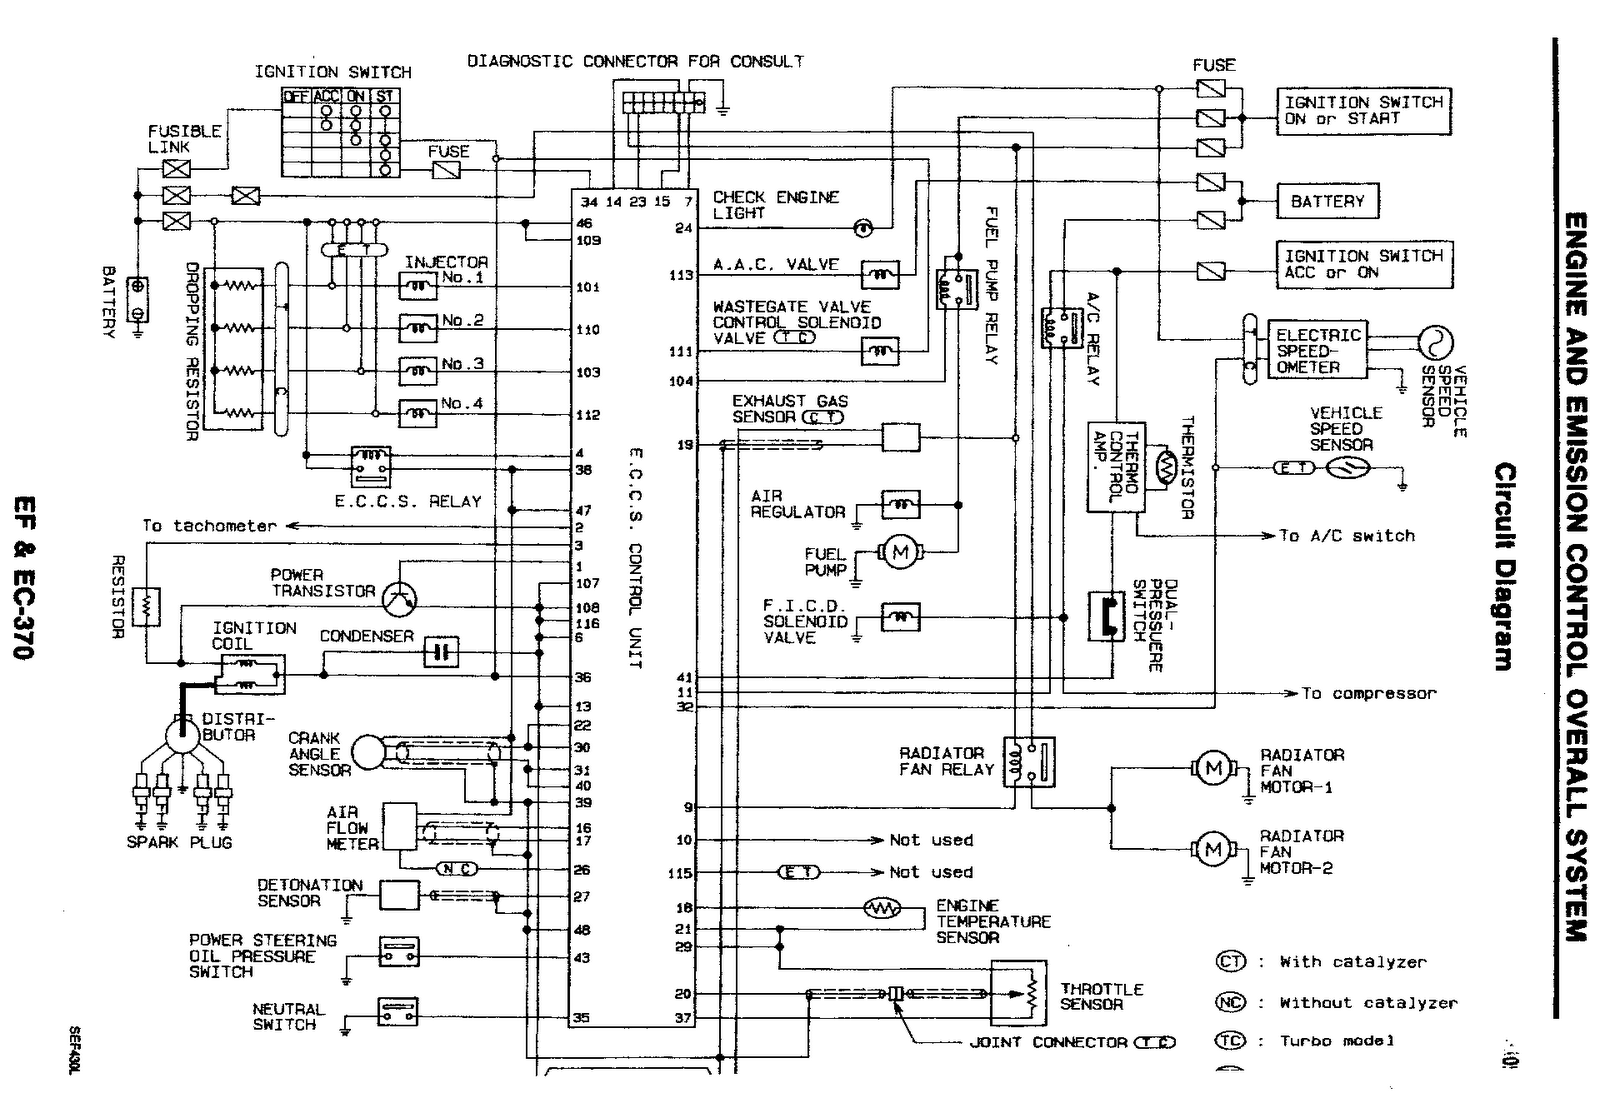 1998 Audi A6 Fuse Diagram Everything About Wiring 98 Nissan Sentra A4 Box Layout Library Rh 77 Kaufmed De